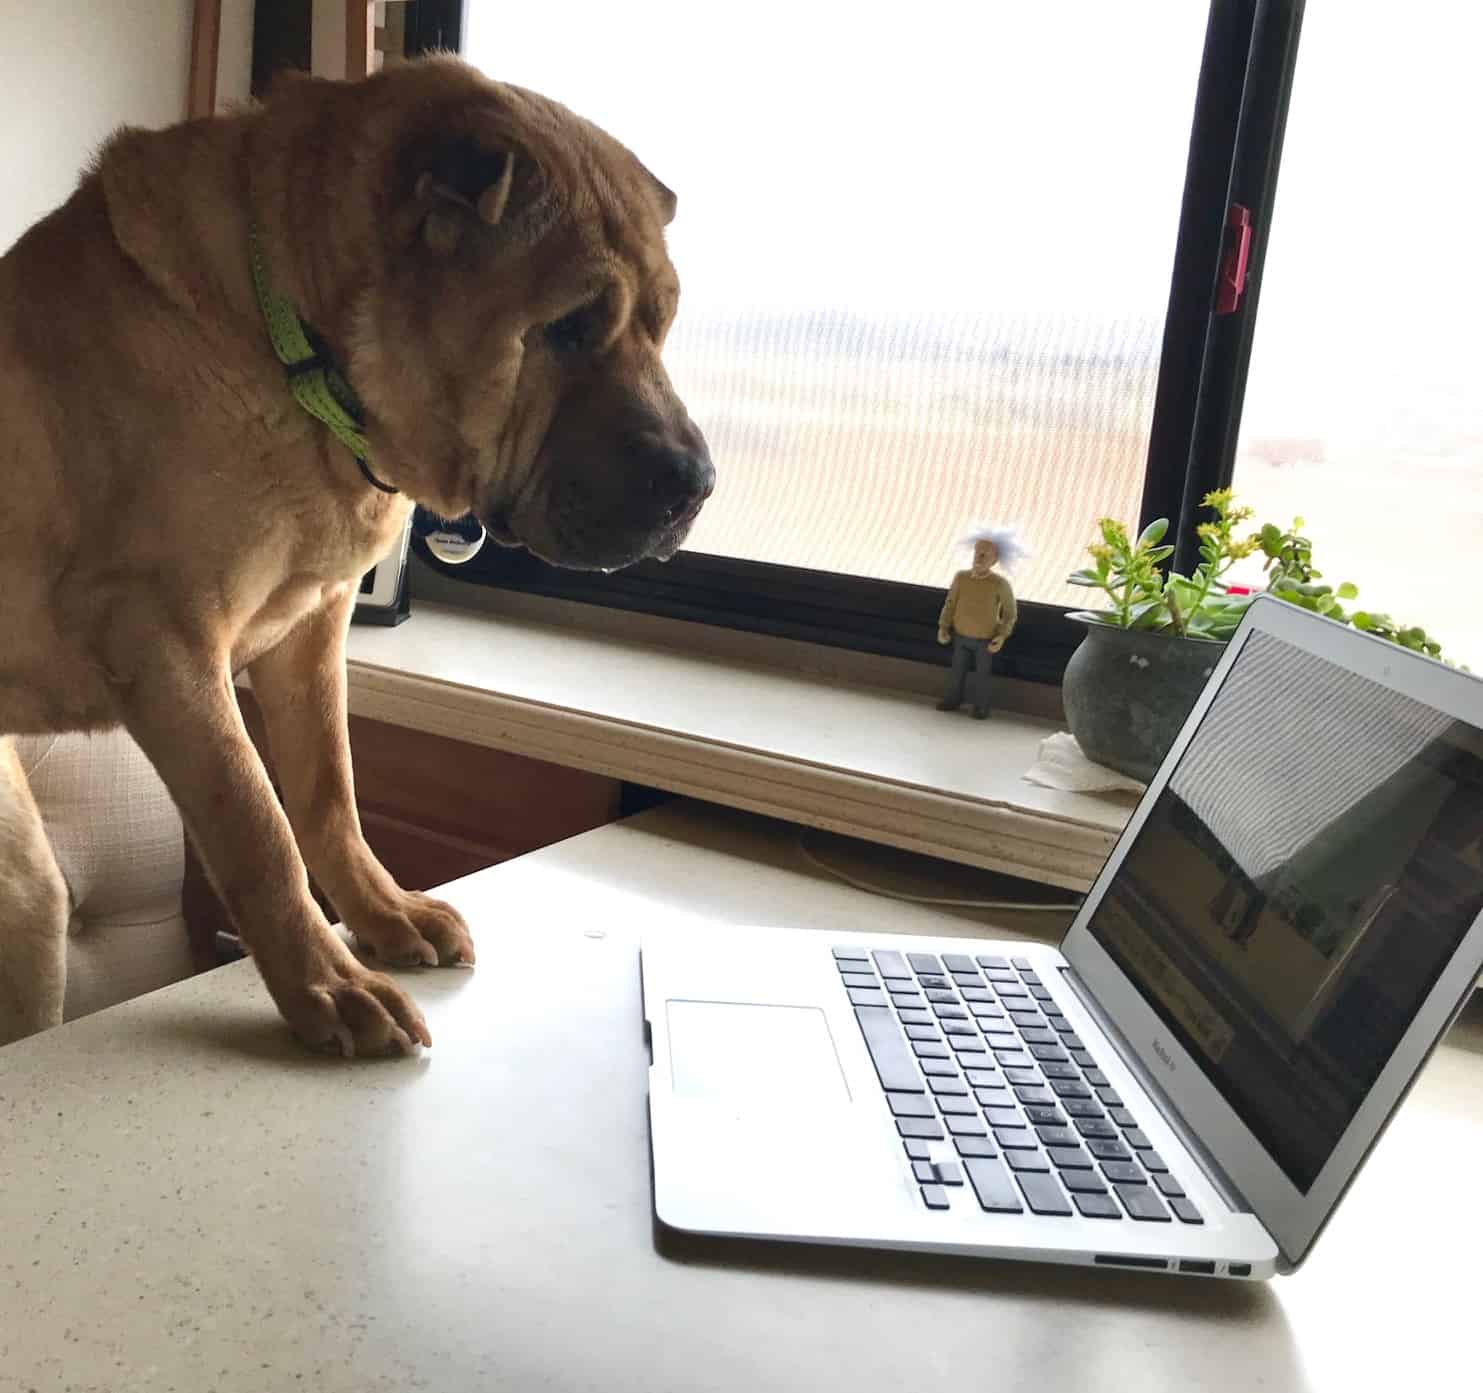 Shar-pei dog looking at a laptop sitting on a desk - supposedly reading pet friendly vacation property reviews